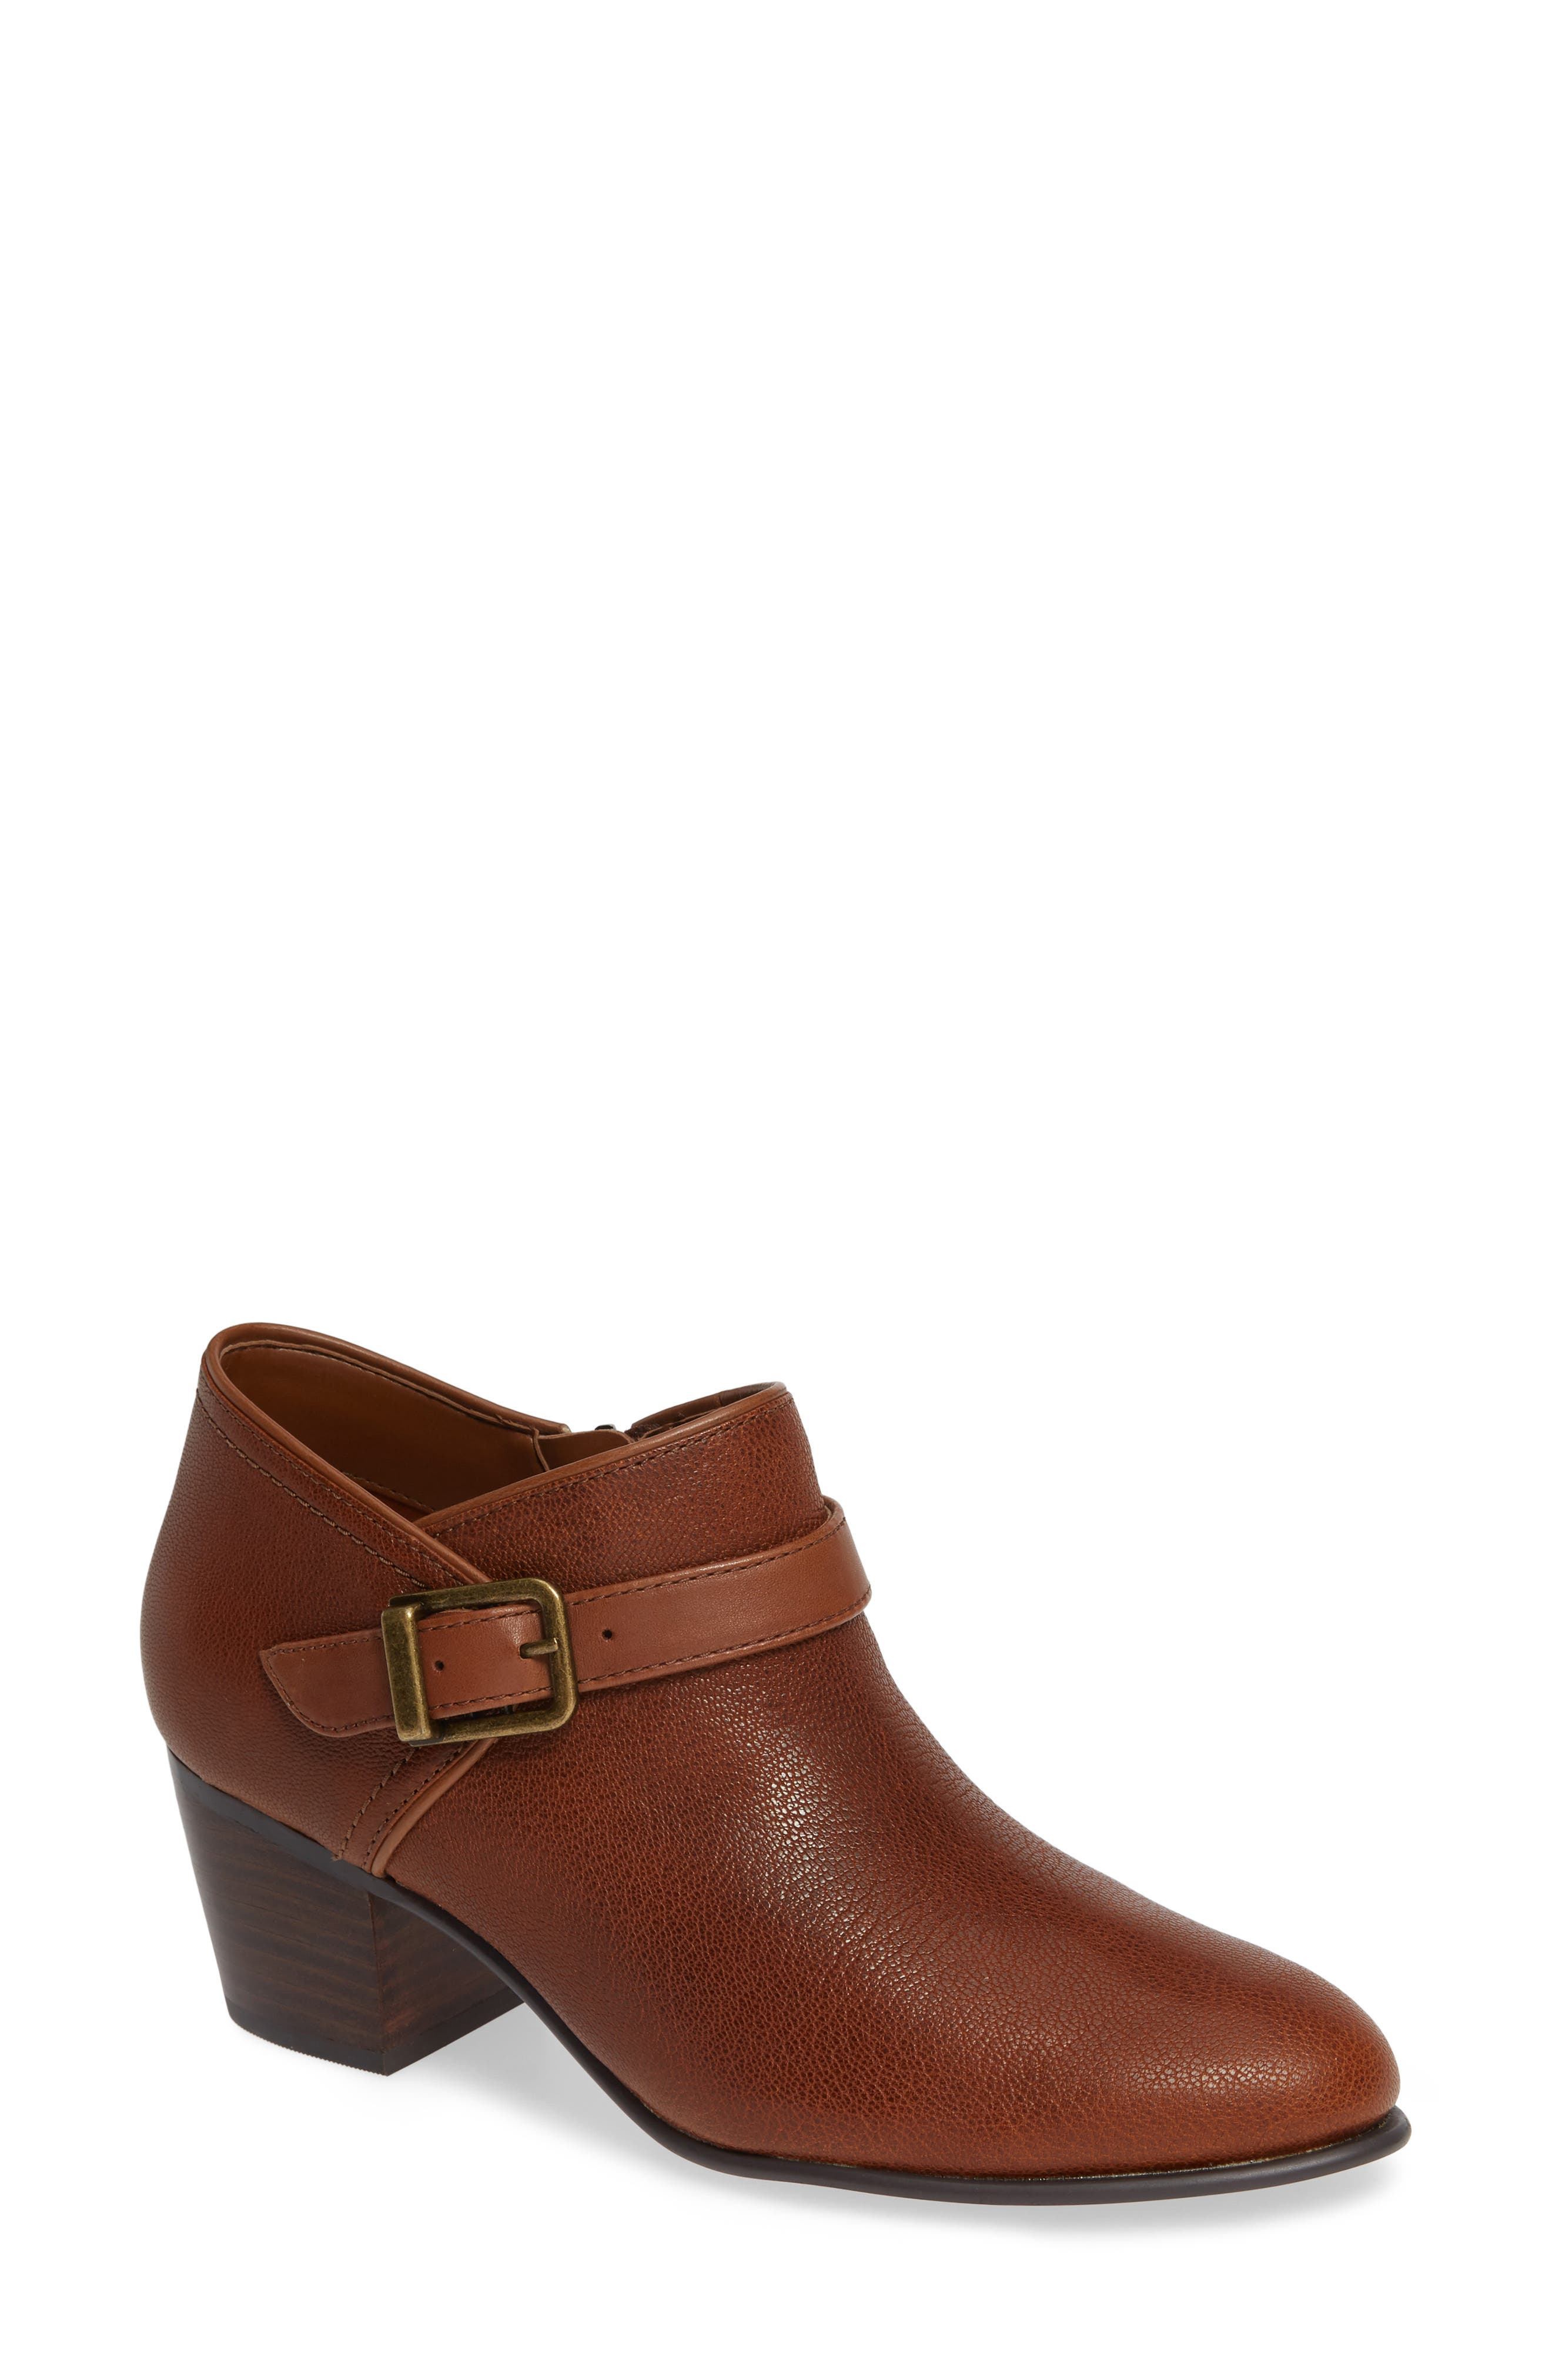 Maypearl Milla Bootie,                         Main,                         color, DARK TAN TUMBLED LEATHER